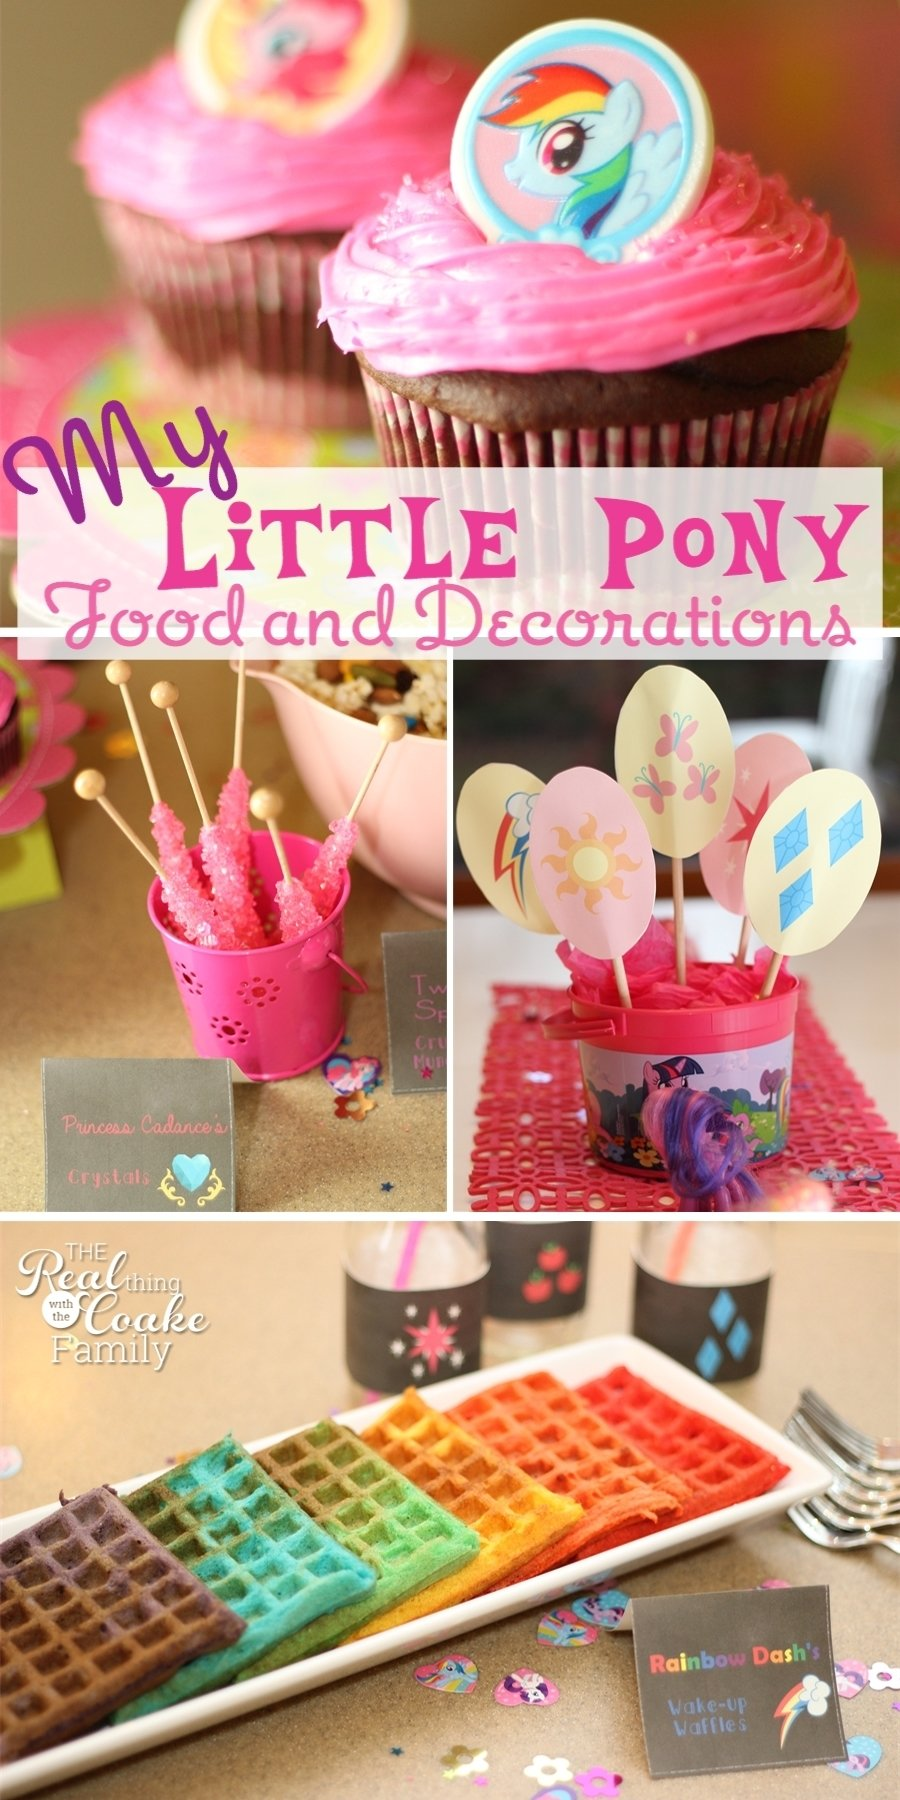 10 Stylish My Little Pony Friendship Is Magic Birthday Party Ideas my little pony birthday party food and decorating ideas 1 2020